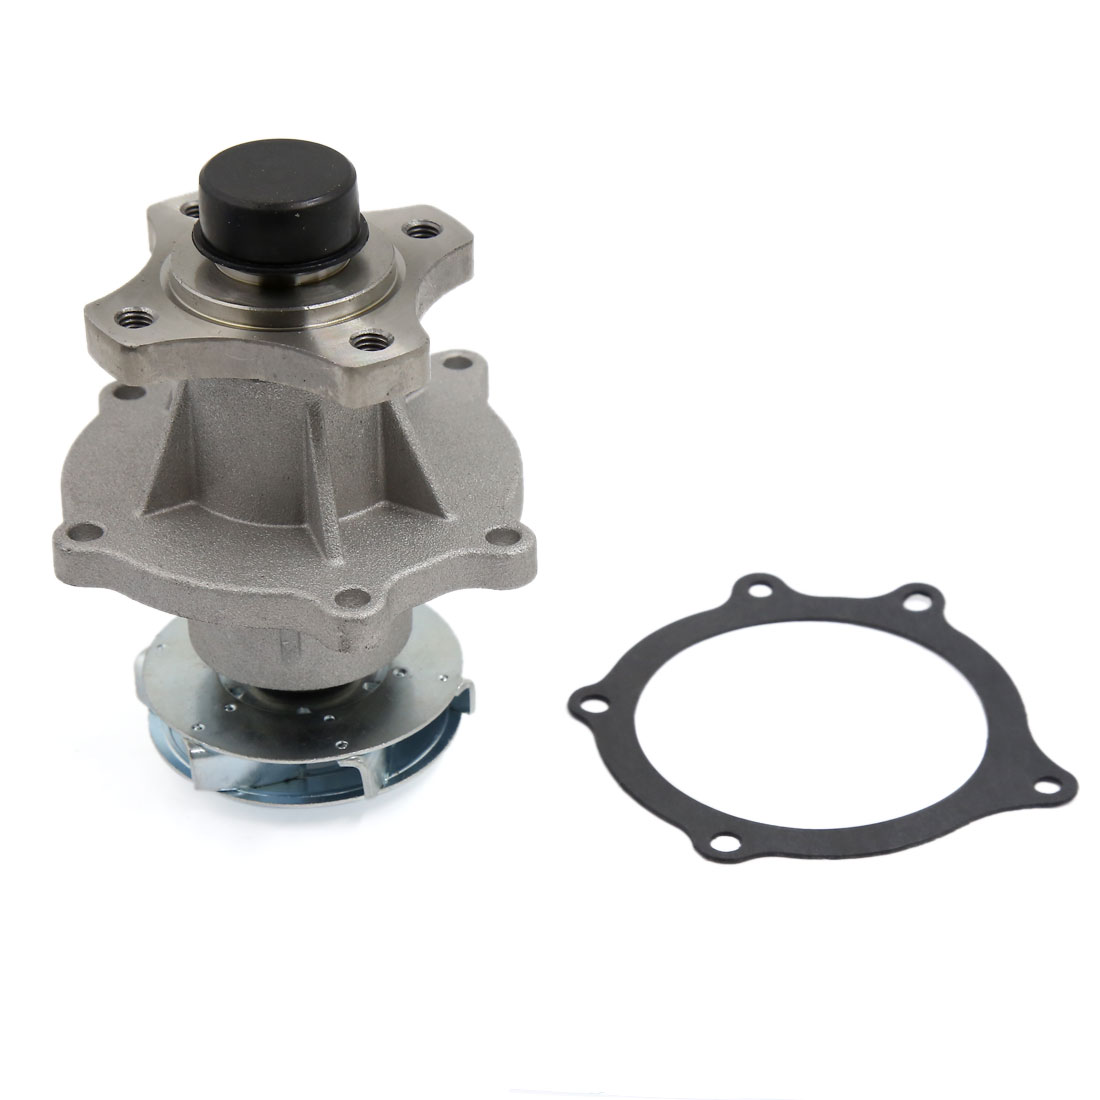 Replacement Water Pump For GMC HUMMER ISUZU CHEVY BUICK OLDSMOBILE